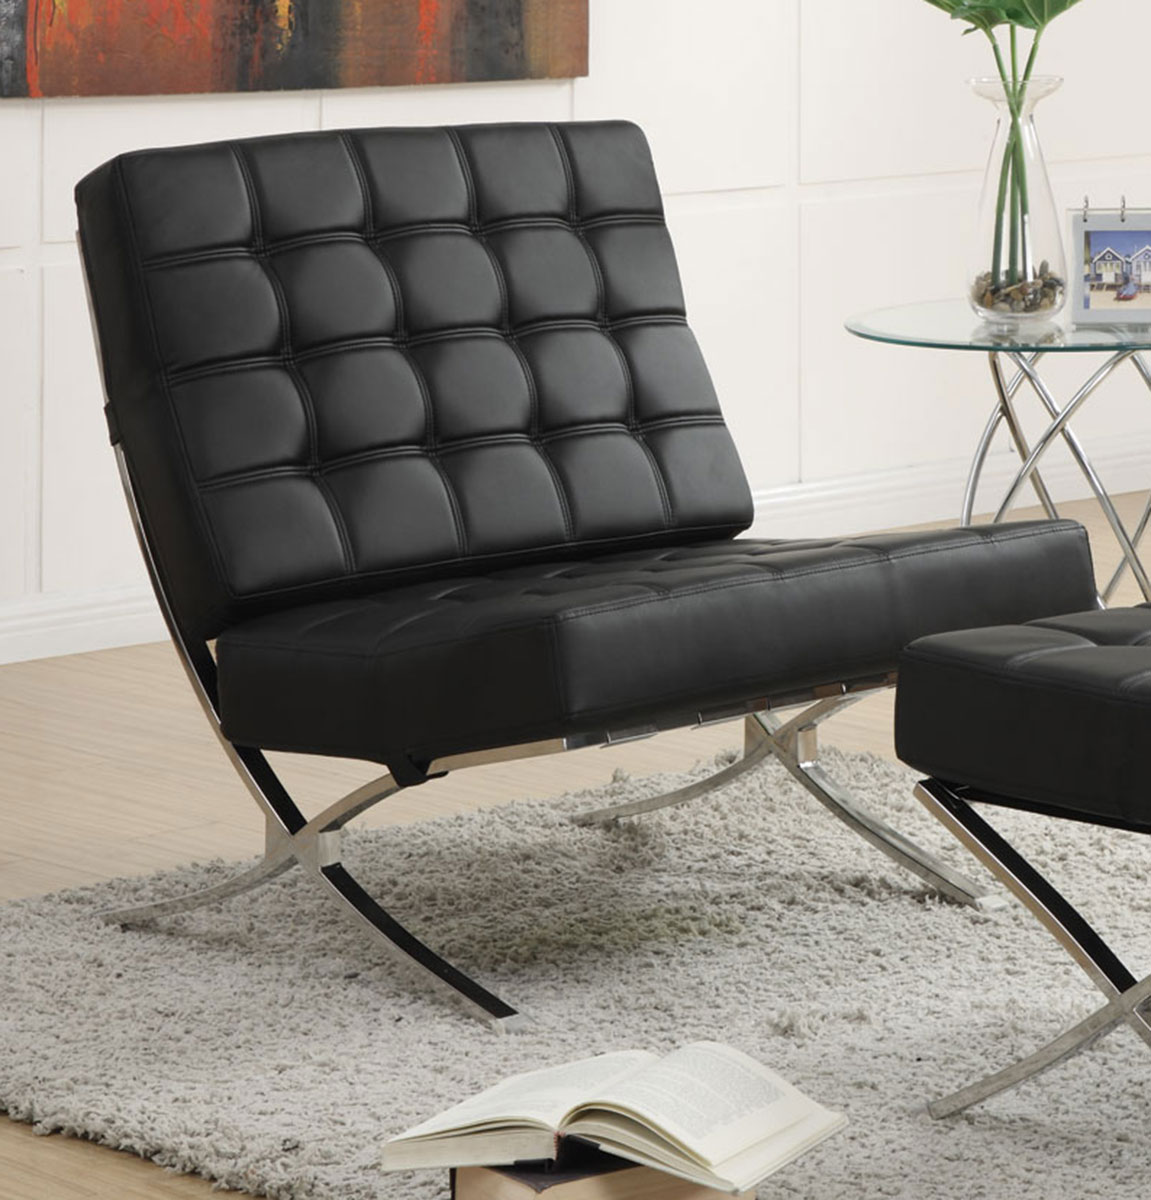 Coaster 902181 Accent Chair - Black/Chrome